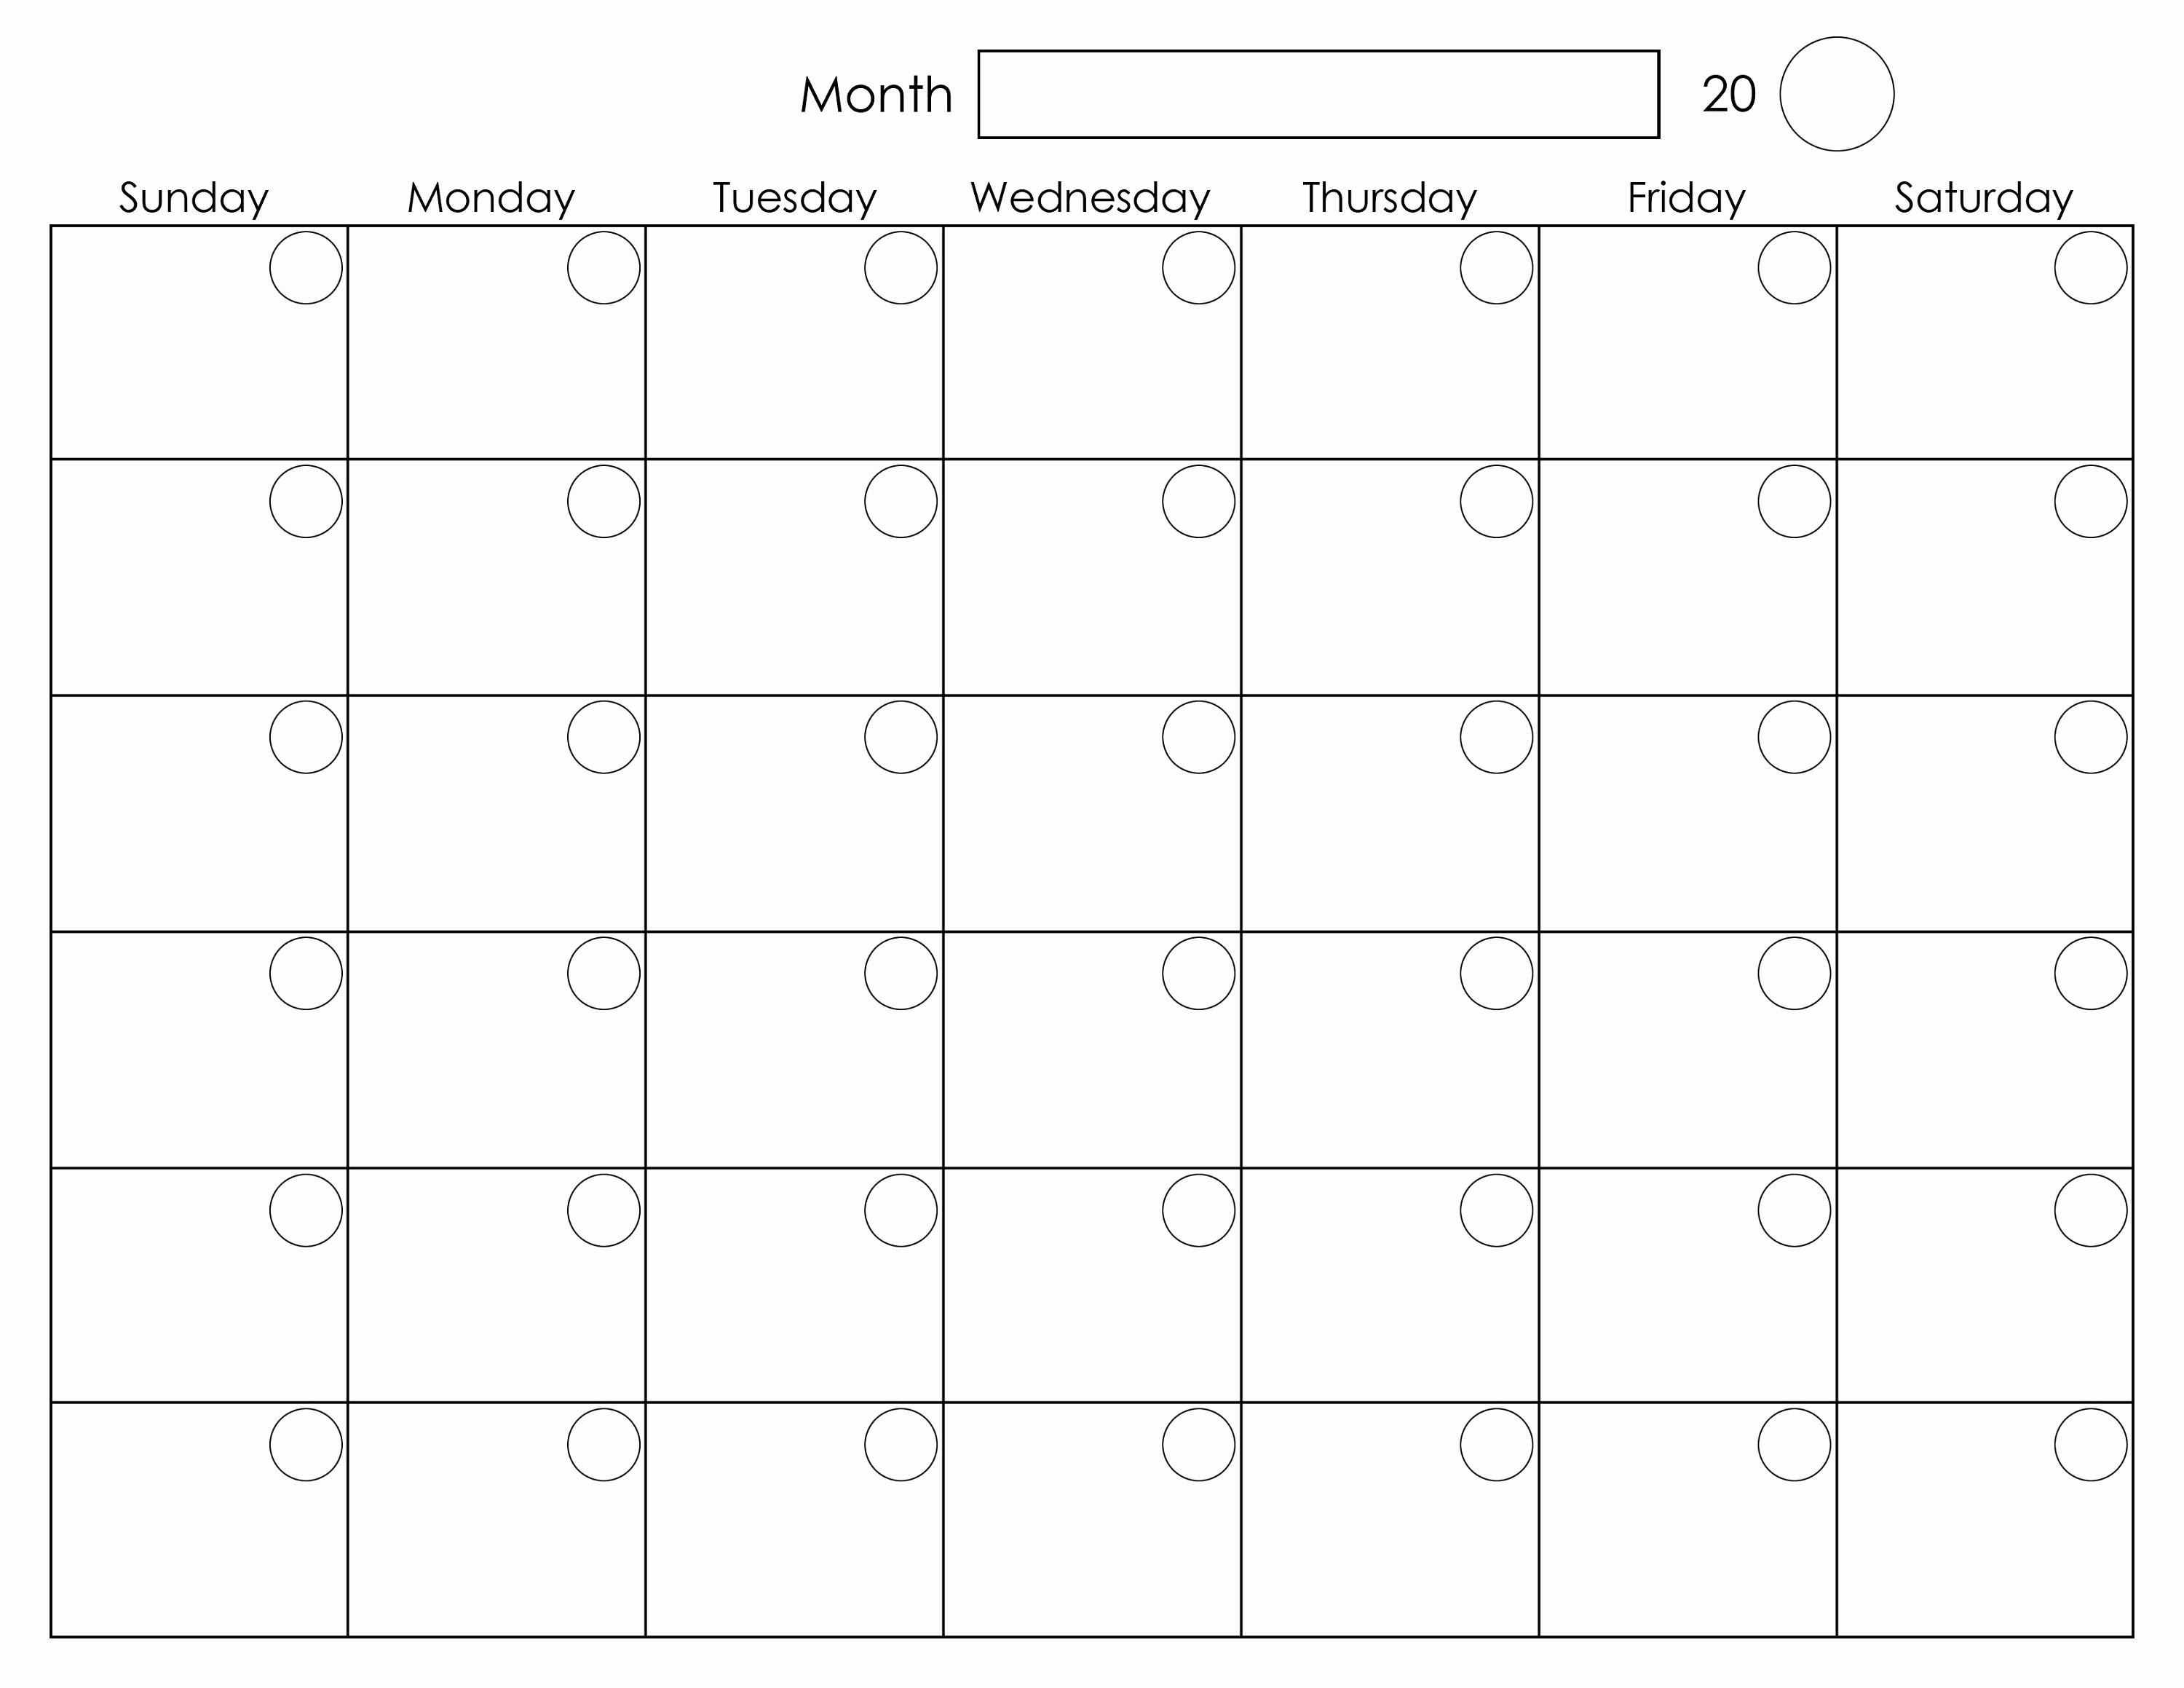 Free Printable Monthly Calendar Templates Fresh Printable Blank Monthly Calendar